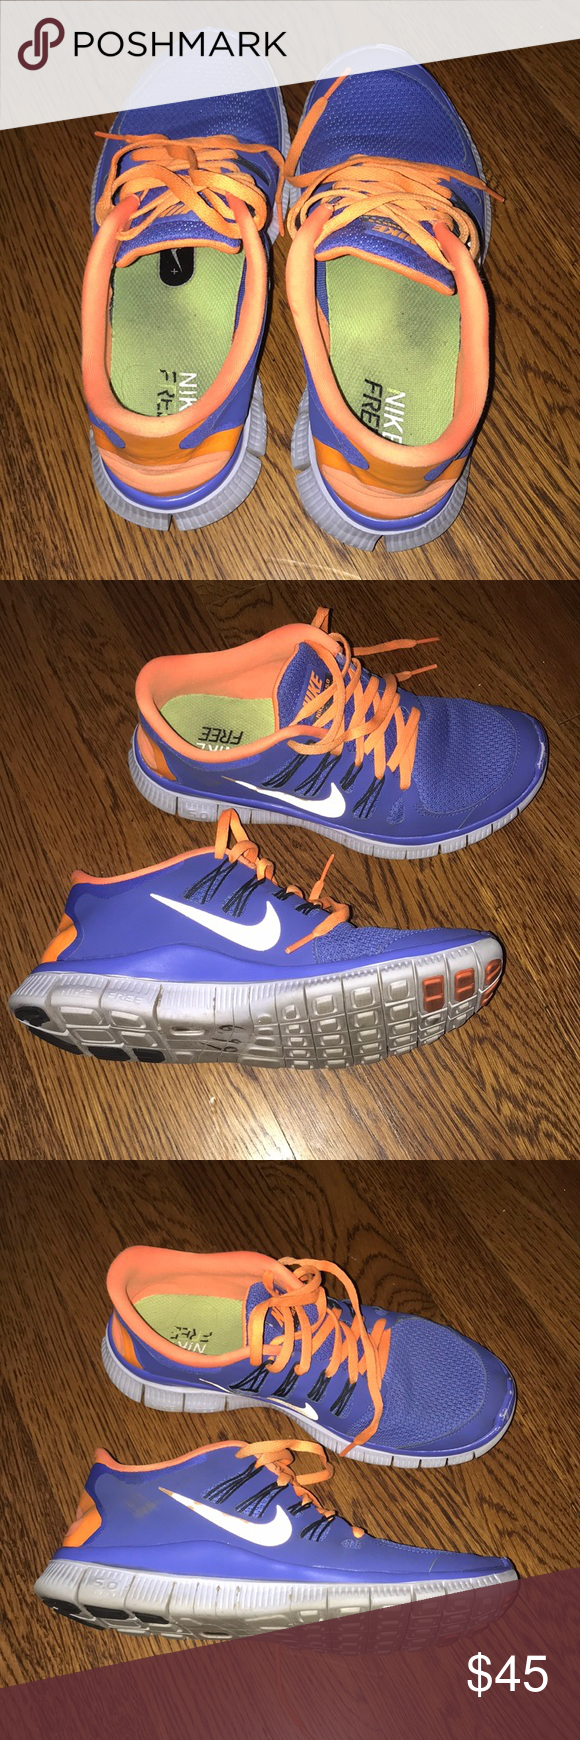 Nike Shoes | Nike Free Run 5.0 | Color: Blue/Orange | Size: 8 #nikefreeoutfit